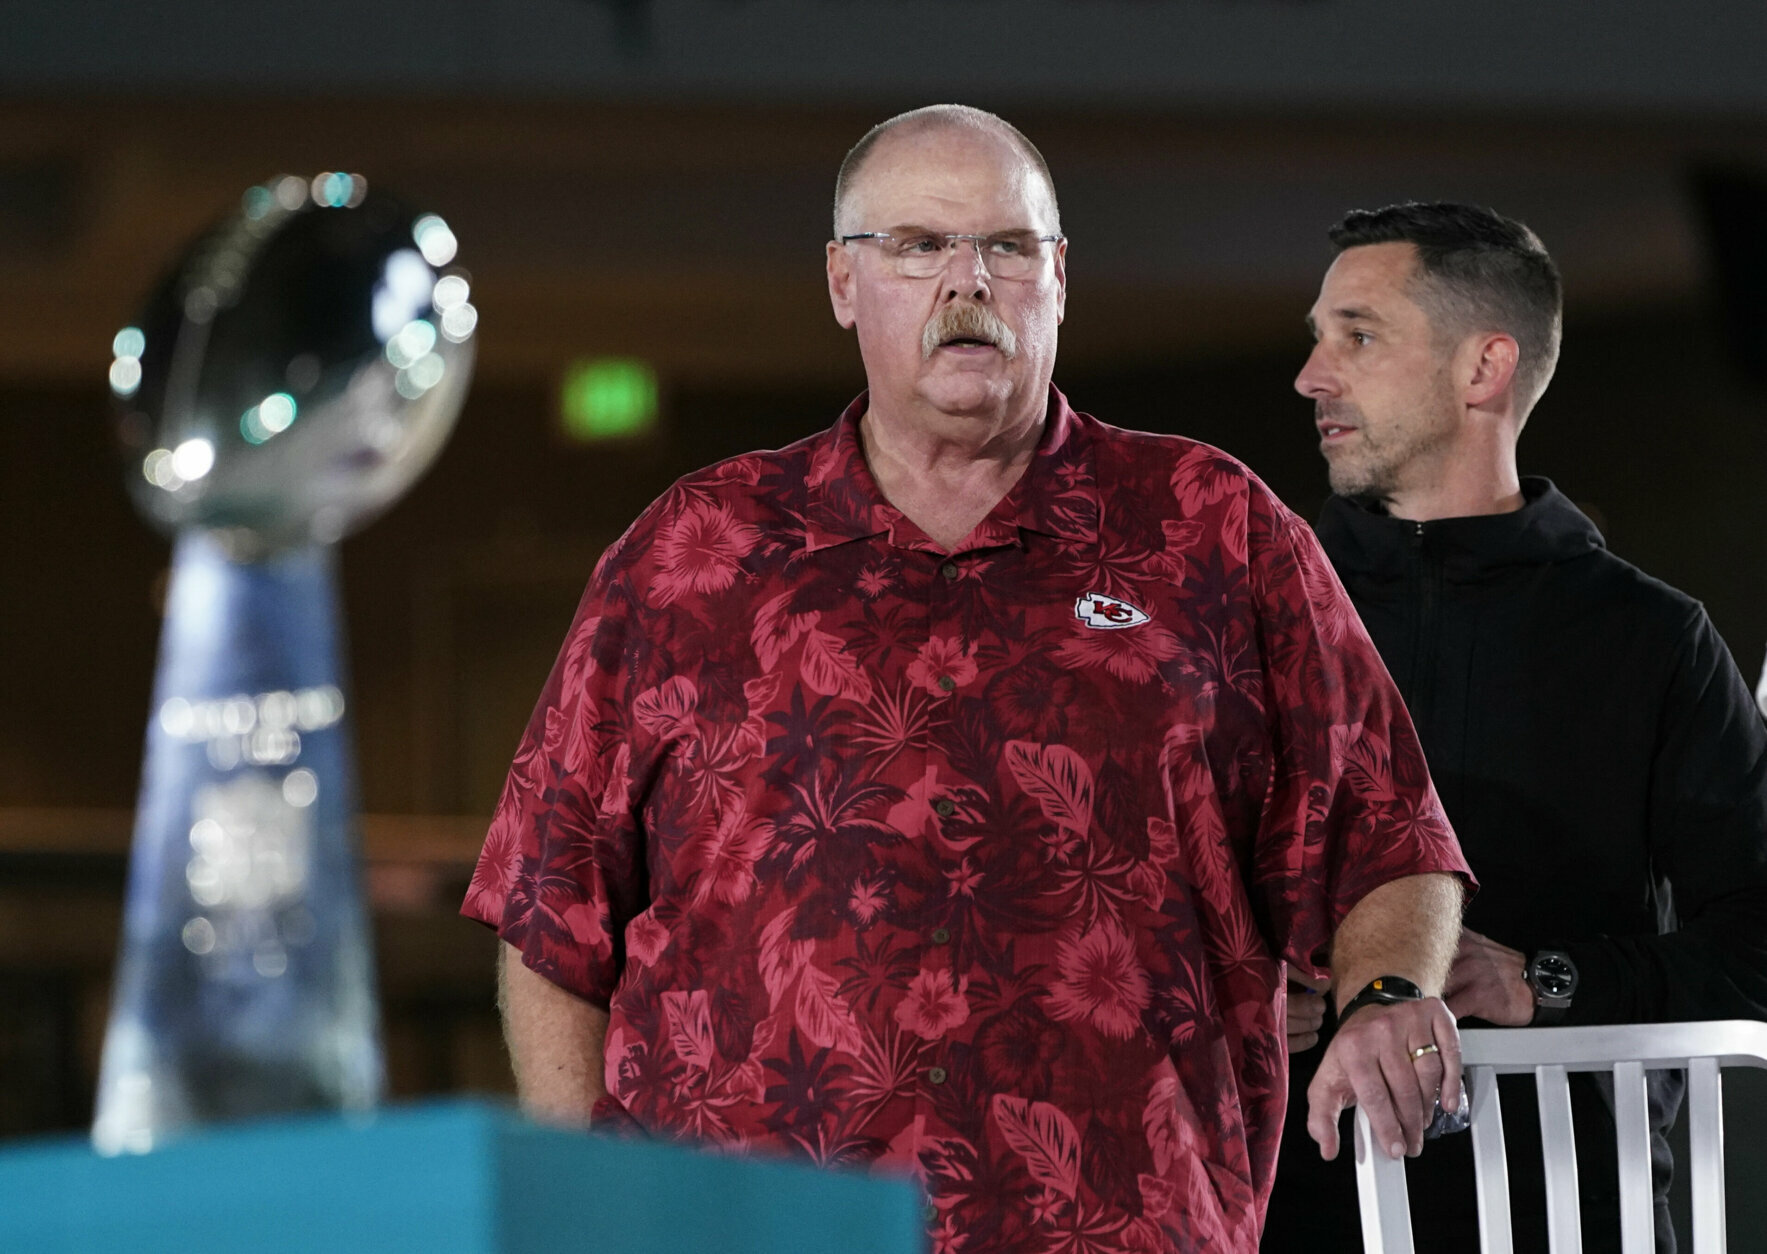 <p>I know Chiefs head coach Andy Reid isn&#8217;t a local &#8212; and is, in fact, a former Eagles coach that tormented the Redskins for over a decade &#8212; but in 21 seasons, he's the sixth-winningest coach in NFL history with zero championships in only one previous Super Bowl appearance. Like beloved veteran coaches Tony Dungy and Bill Cowher before him, let Andy have his long-awaited day in the sun.</p>